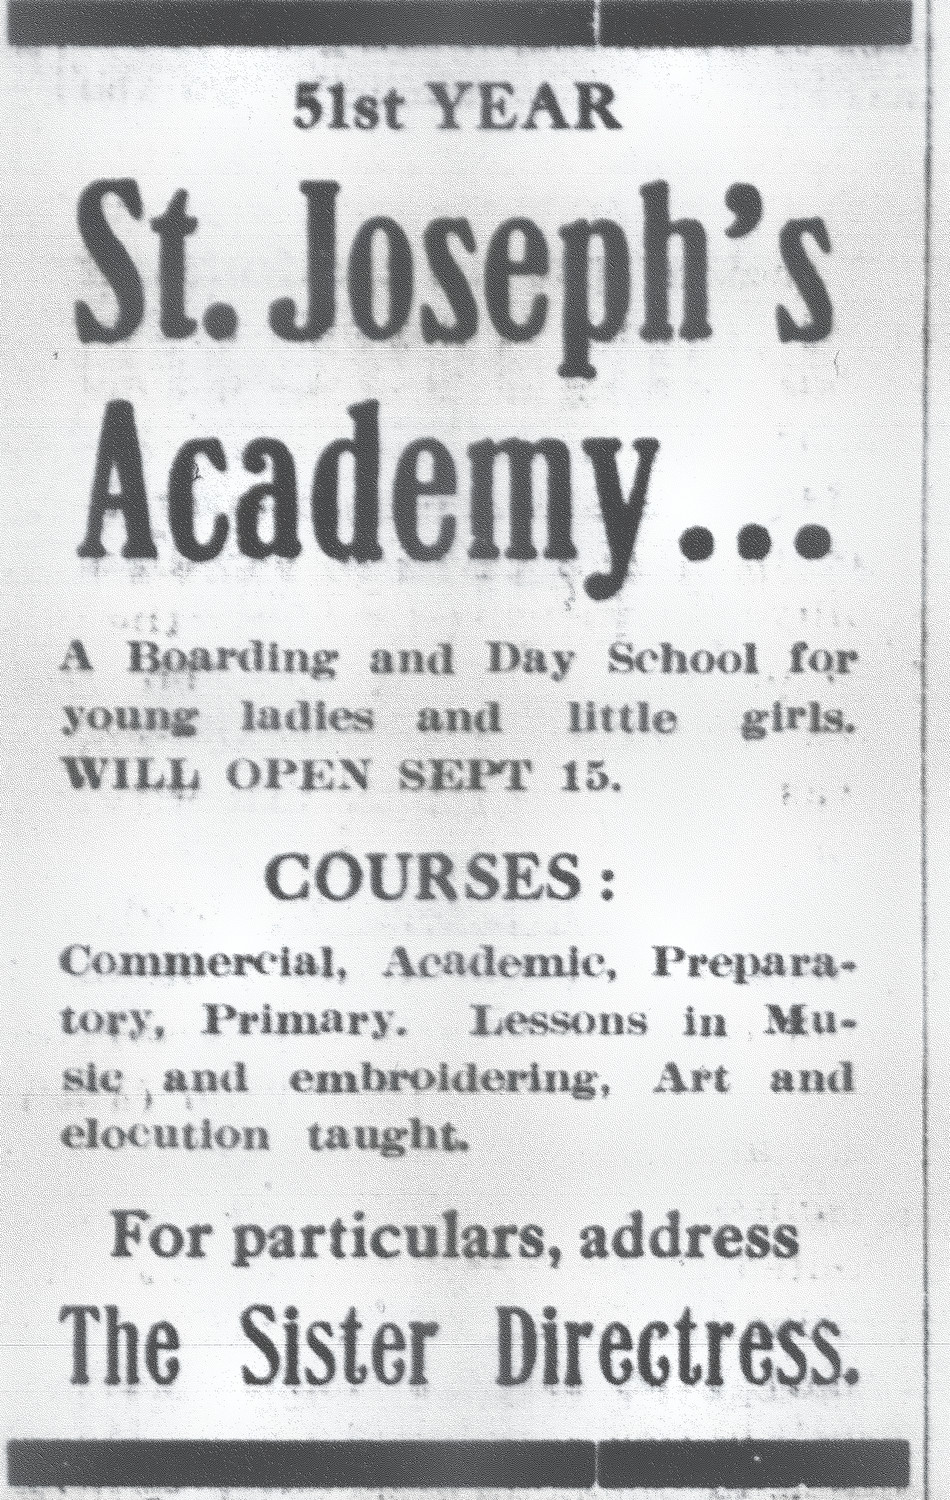 The academy was advertised as a day school for young girls.